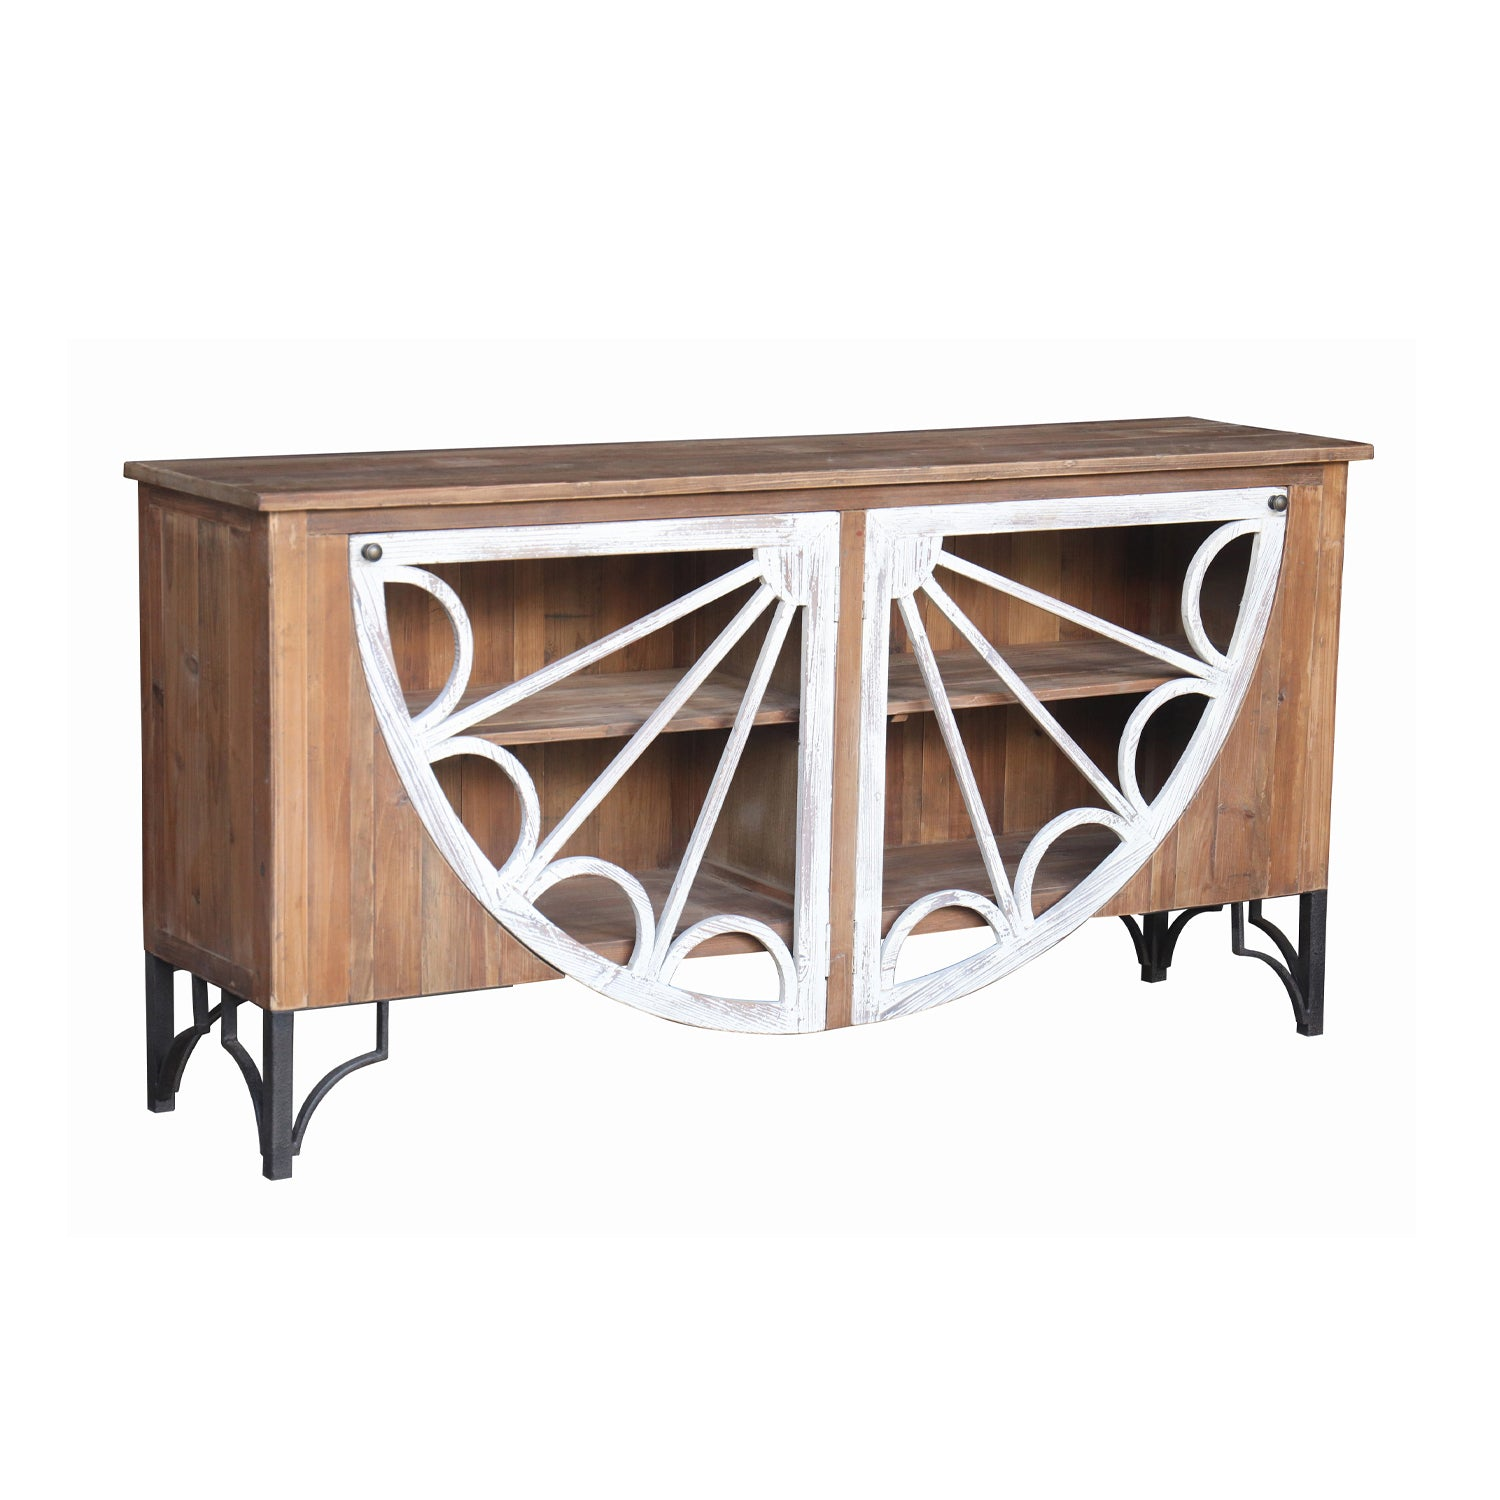 Lambs Green - Butterfly Cabinet